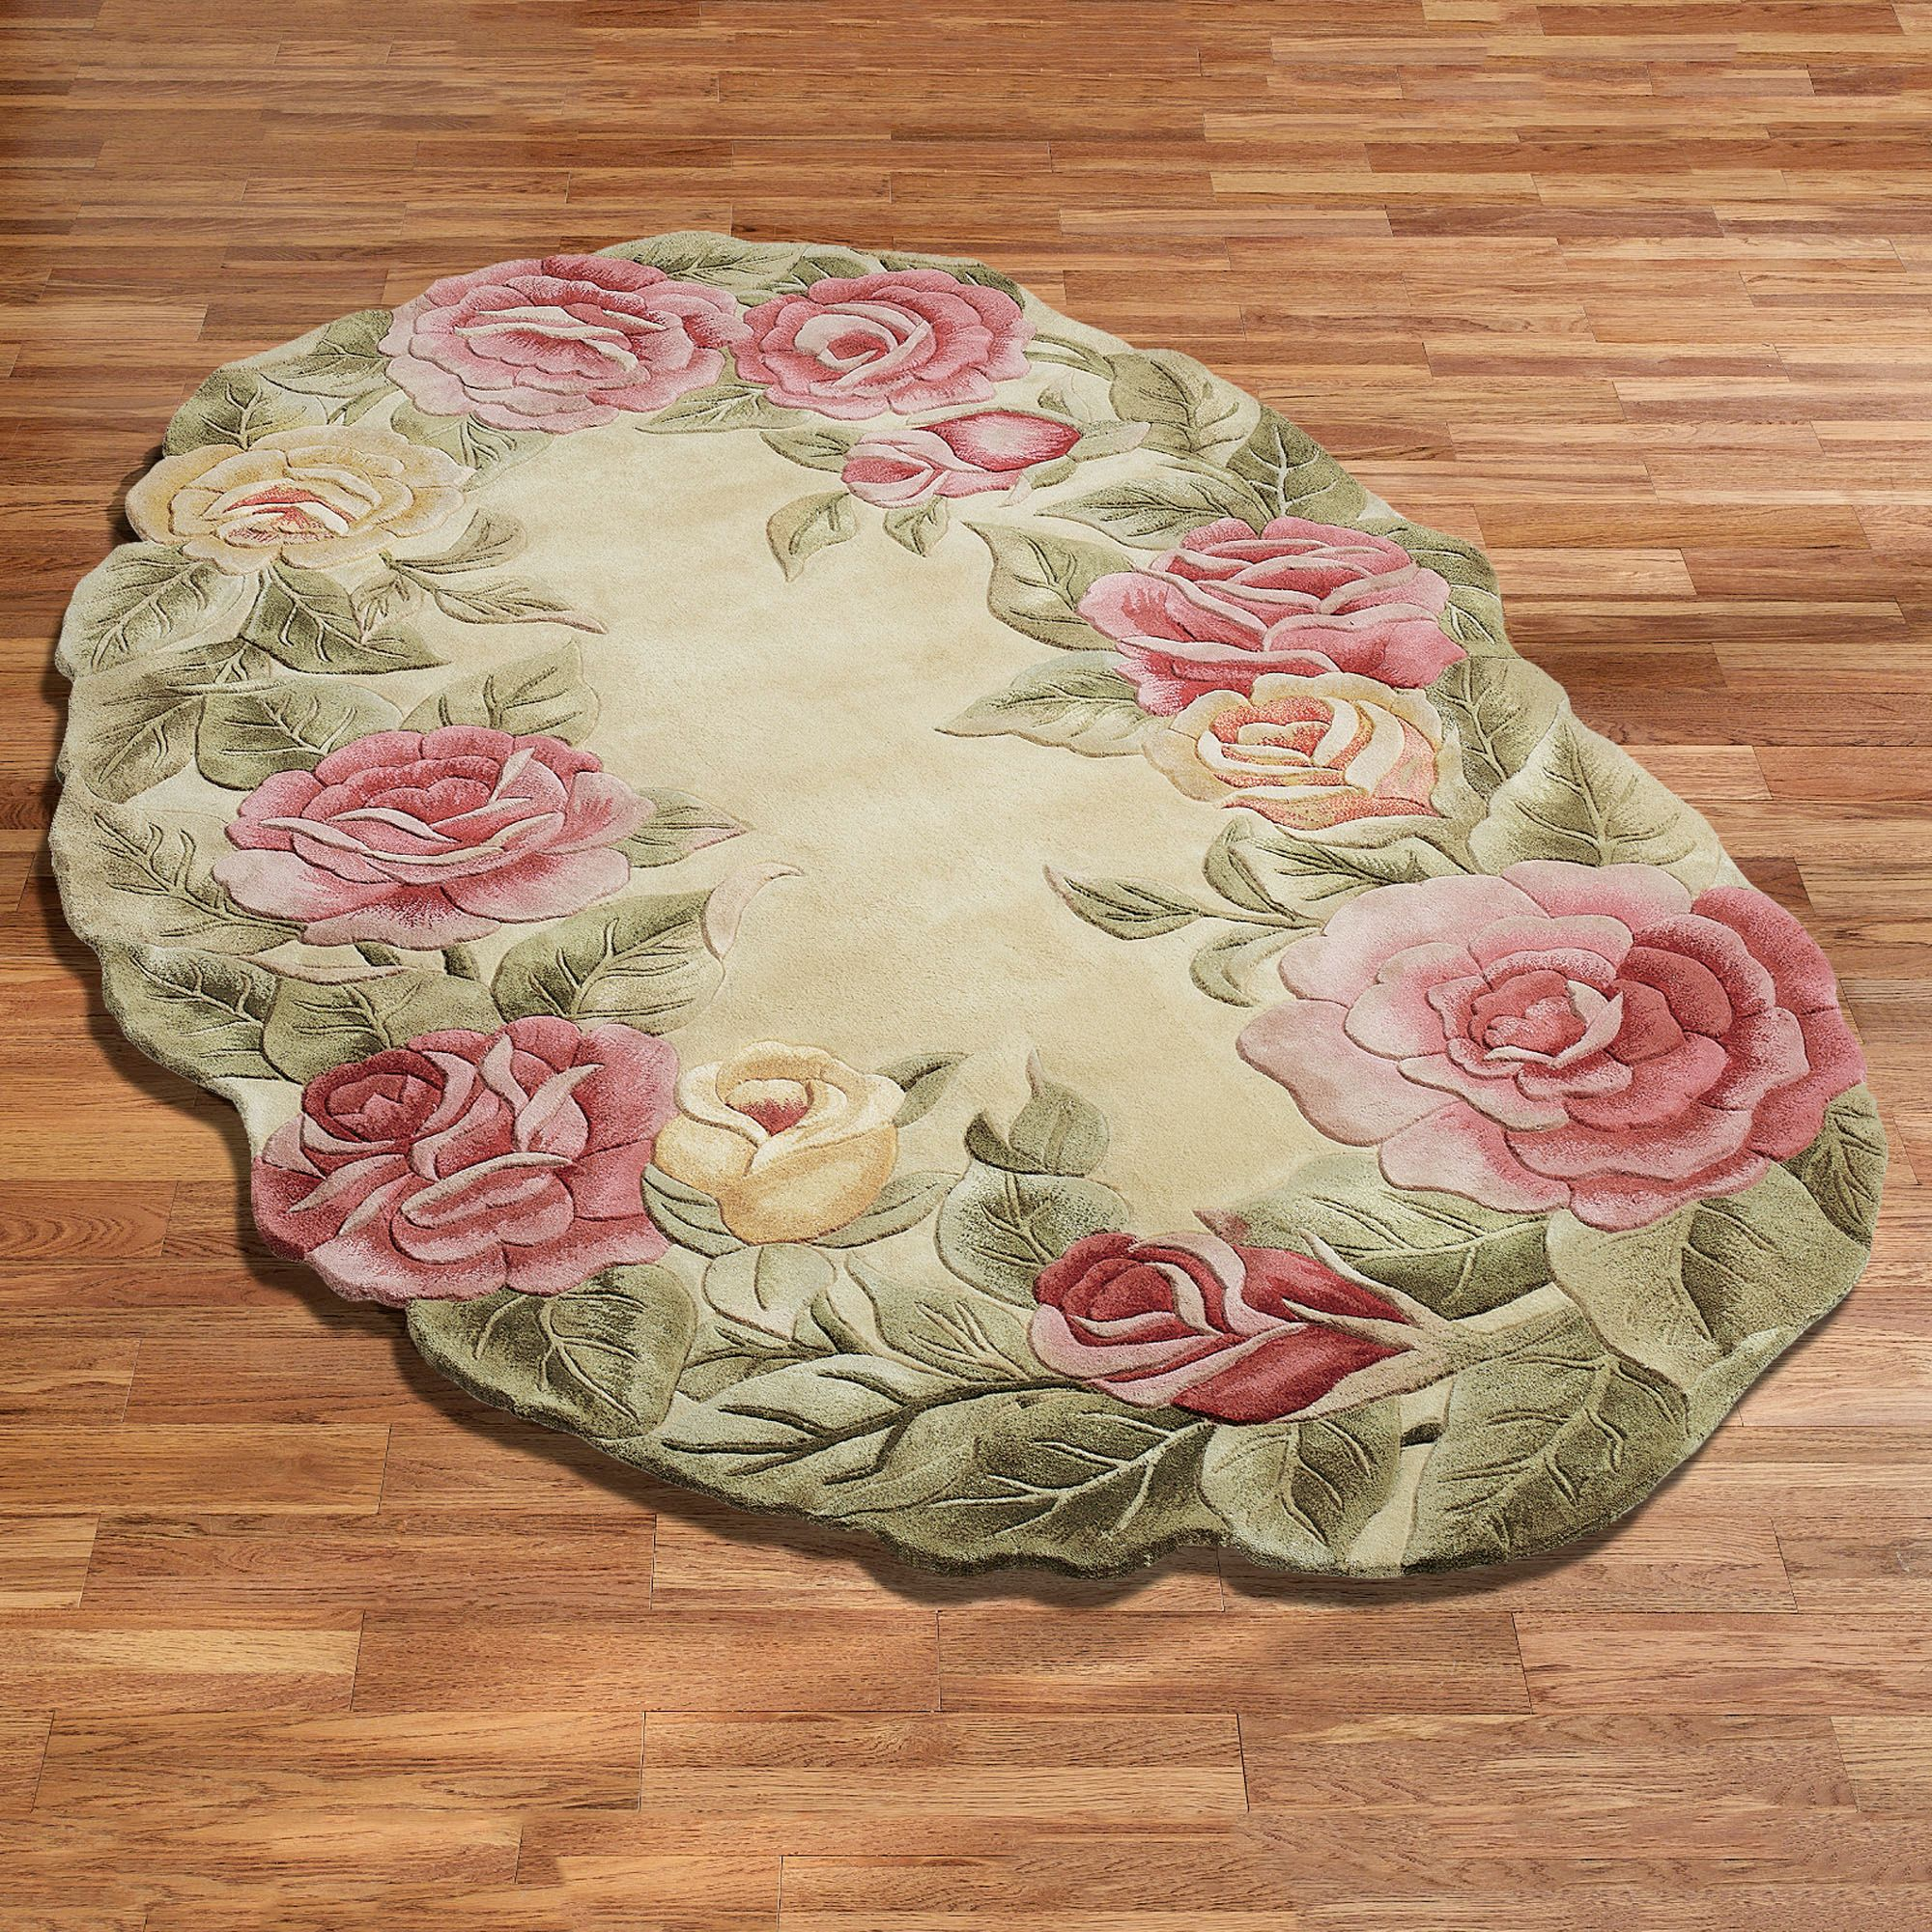 Rose Bath Rug Rugs Ideas